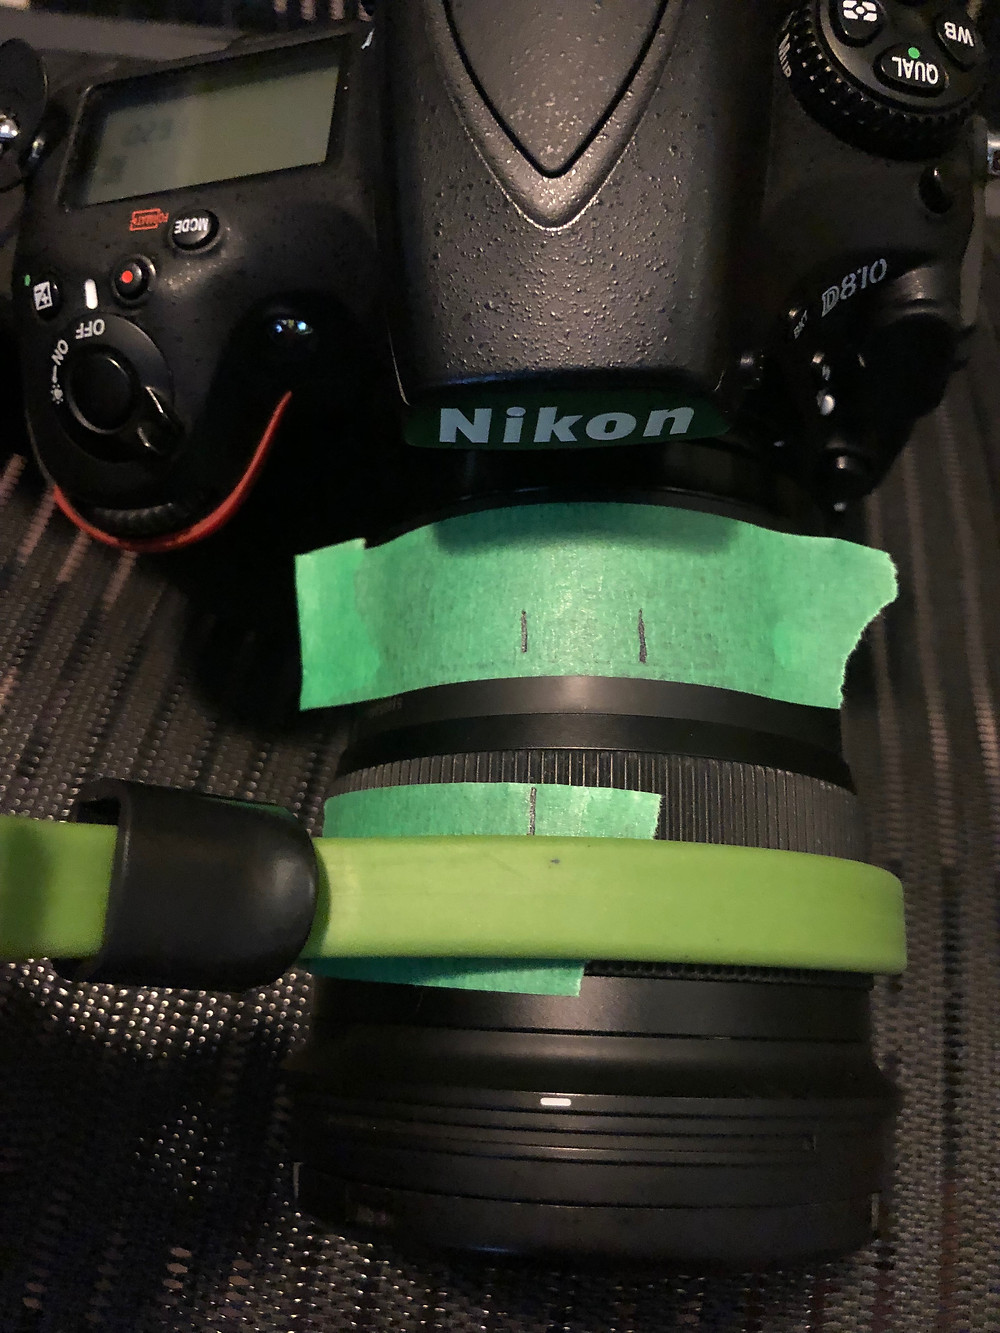 Silicone jar opener for follow focus for DSLR